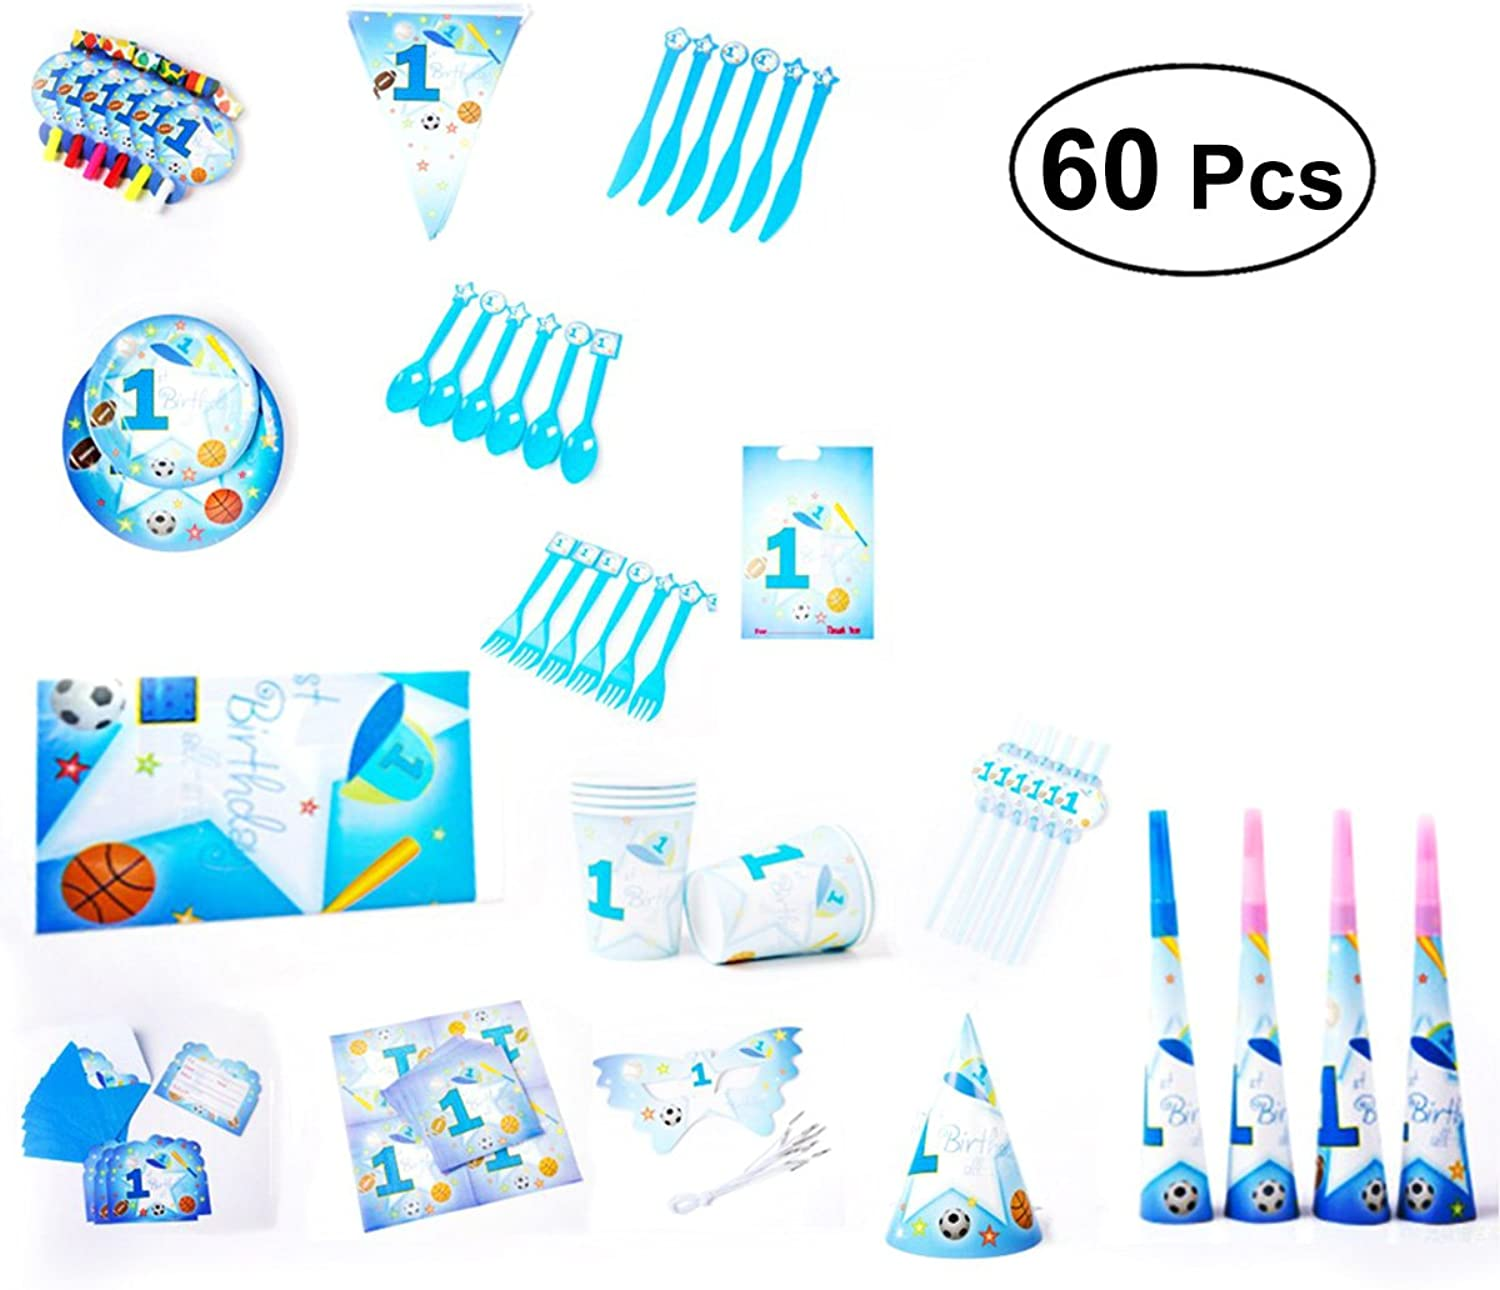 BESTOYARD Birthday Party Paper Tableware Set Baby Shower Party Decoration Kit for 6 Person 90 Pcs